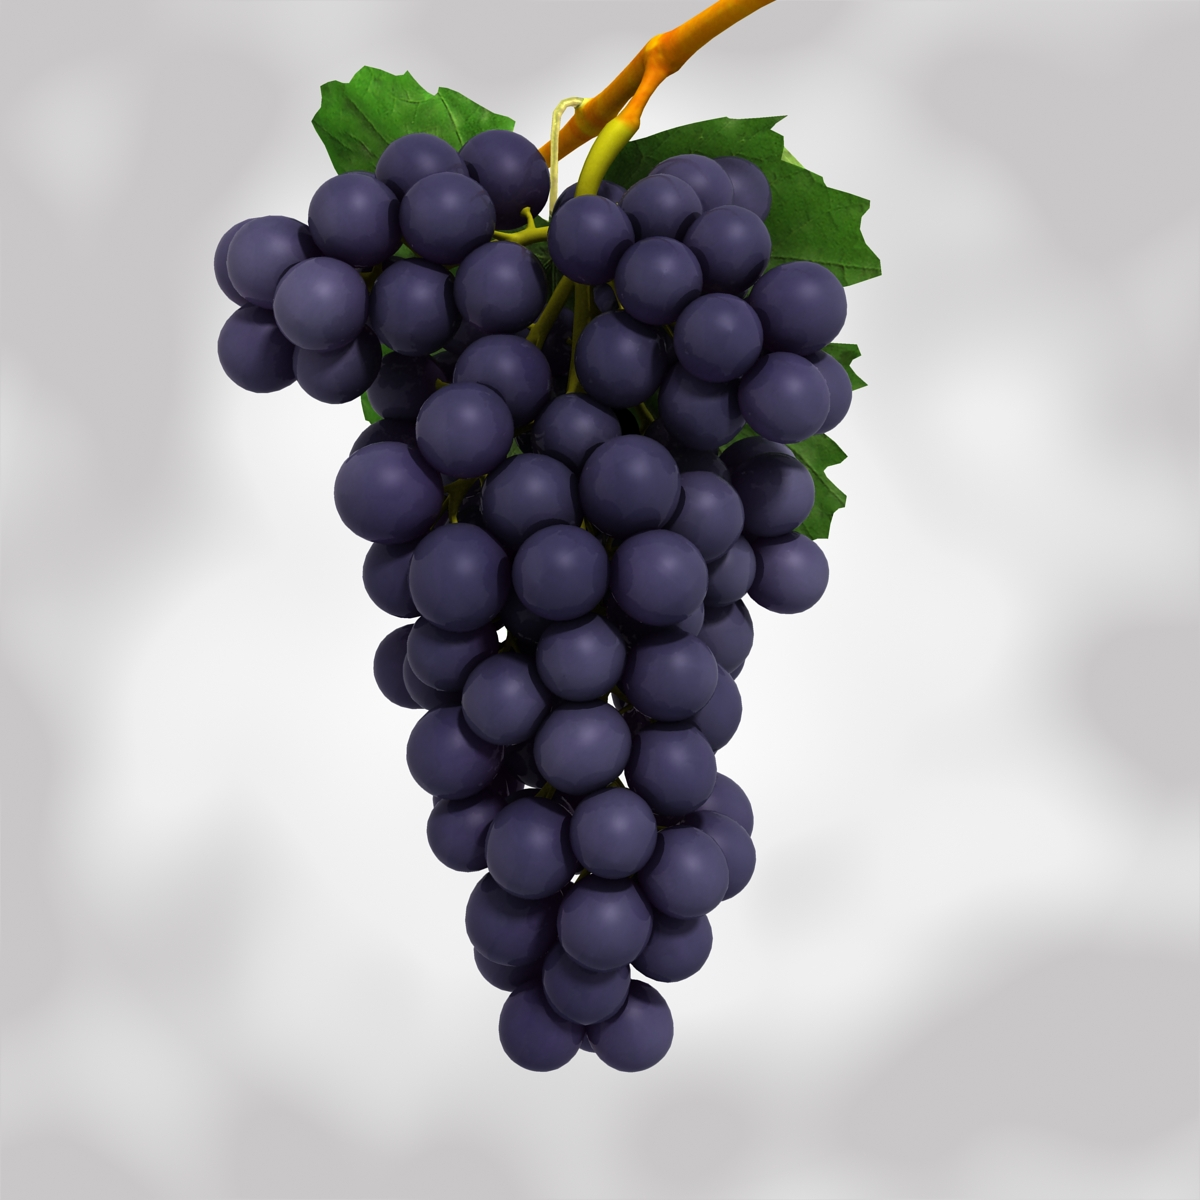 grapes black and blue 3d model 3ds max fbx c4d obj 204268